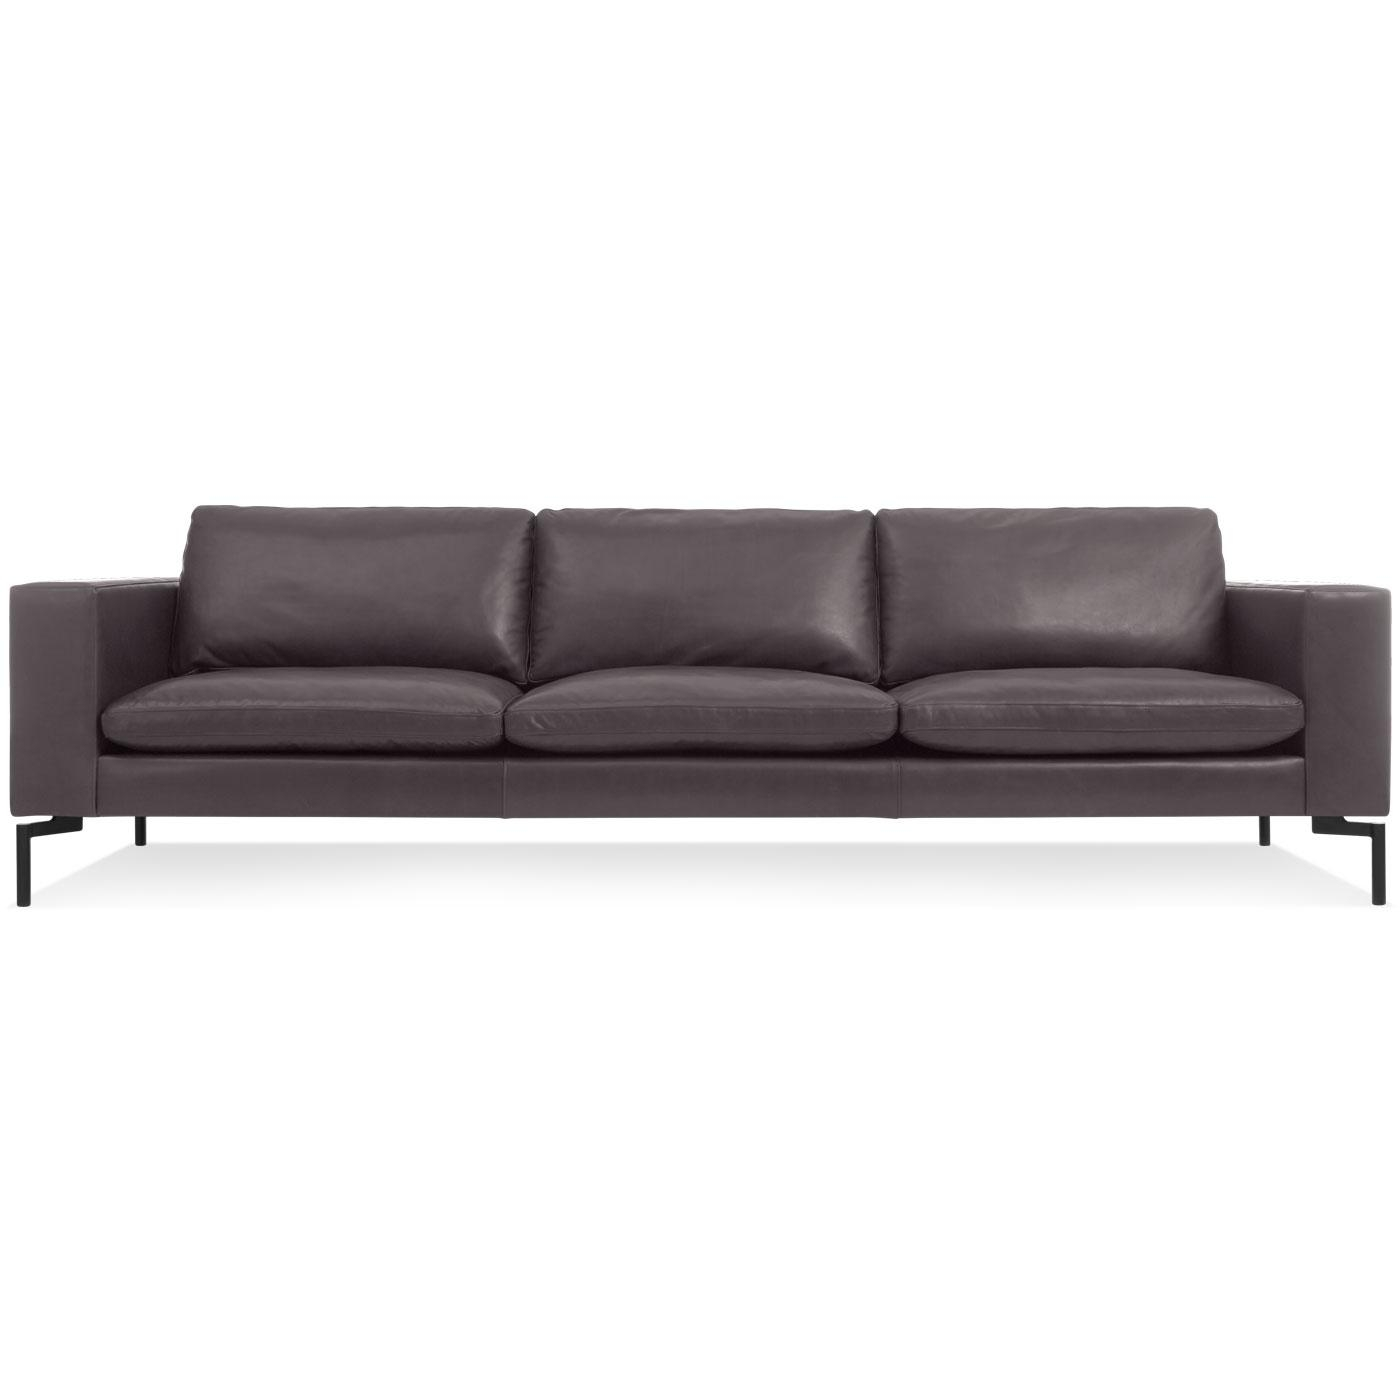 New Standard 104 Inch Leather Sofa – Modern Sofas And Sectionals With 4 Seat Leather Sofas (View 18 of 20)